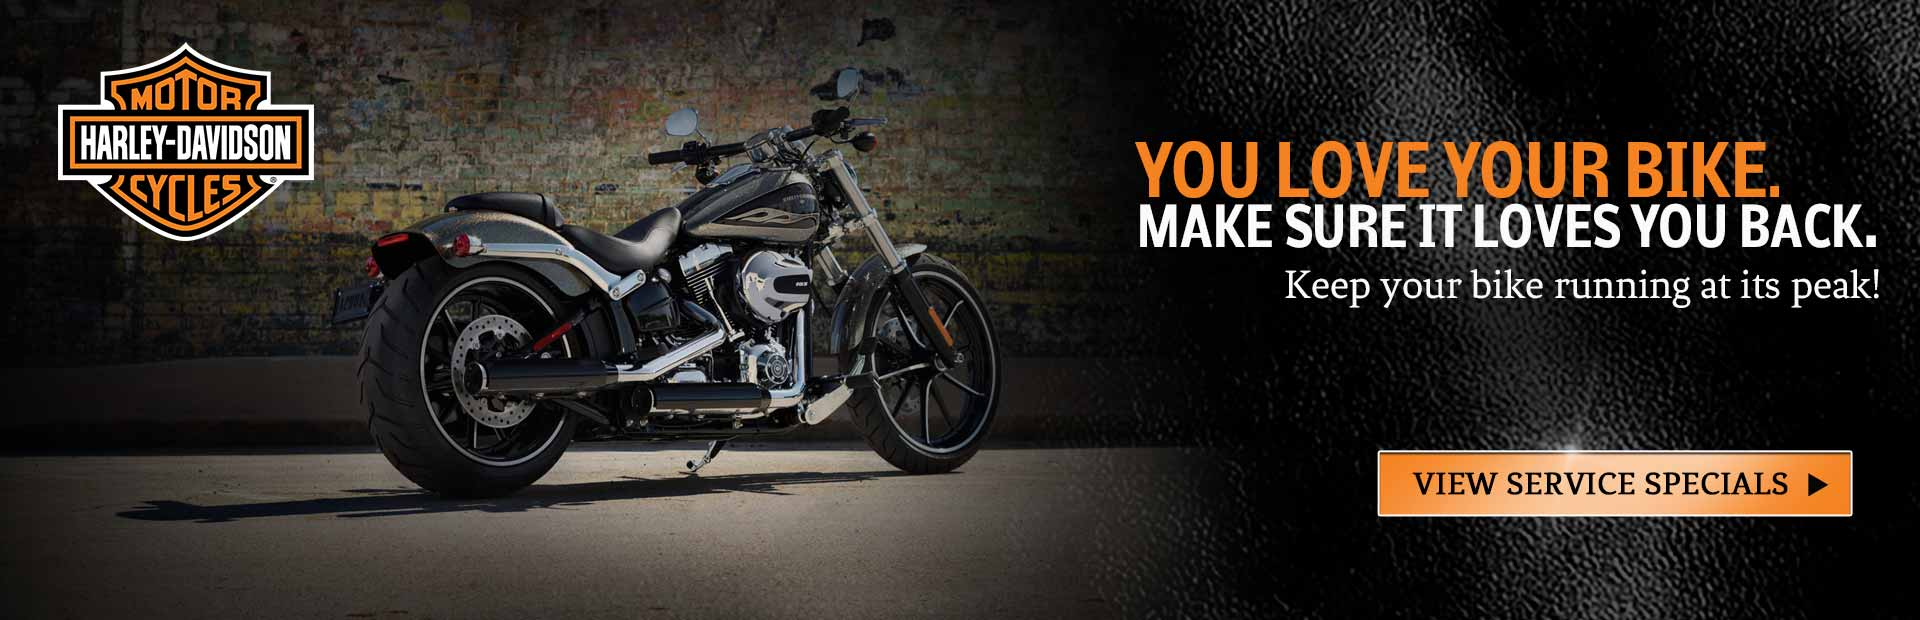 You love your bike. Make sure it loves you back. Keep your bike running at its peak! Click here to view service specials.